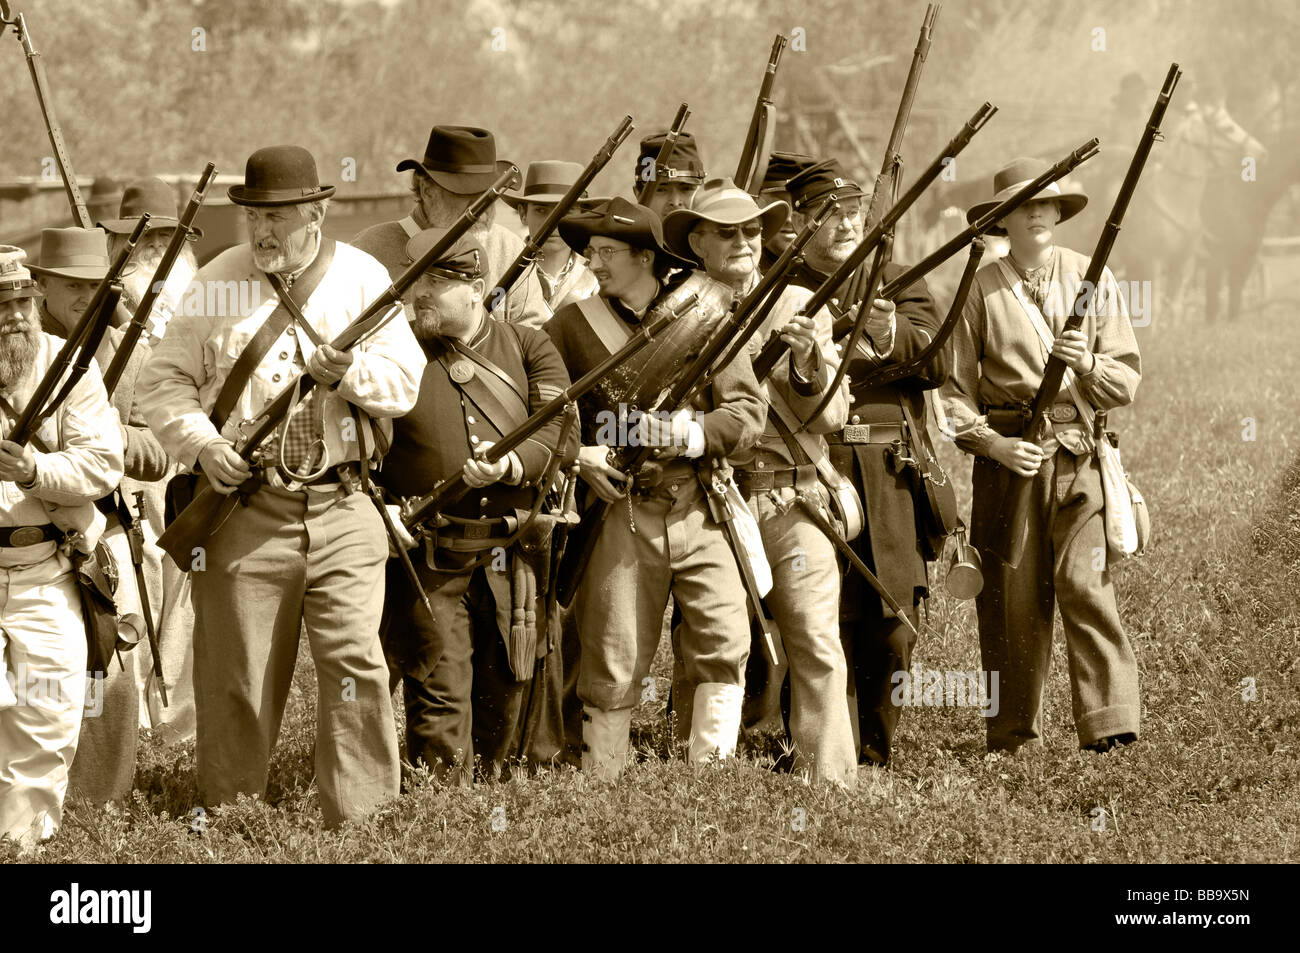 Confederate soldiers on the battlefield with muskets in sepia tones during a civil war re-enactment. - Stock Image